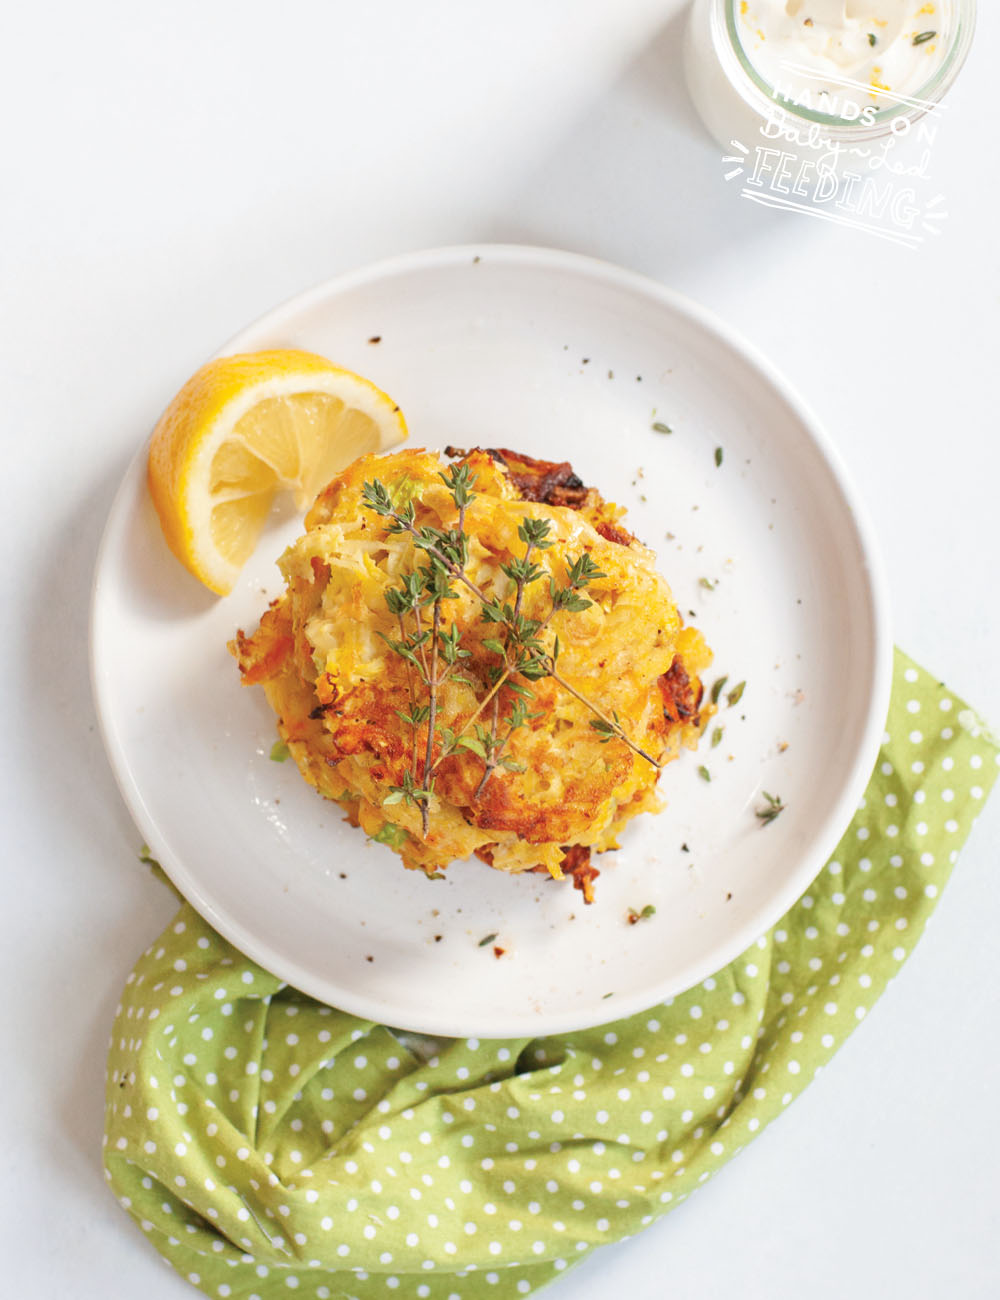 Freezer friendly healthy hash browns loaded with veggies! Easy healthy finger food appetizer or side dish for baby-led weaning. #hashbrown #fingerfood #hiddenveggies #pickyeaters #freezerfriendly #babyledweaning #babyledfeeding #cabbagerecipe #carrots #potatoes